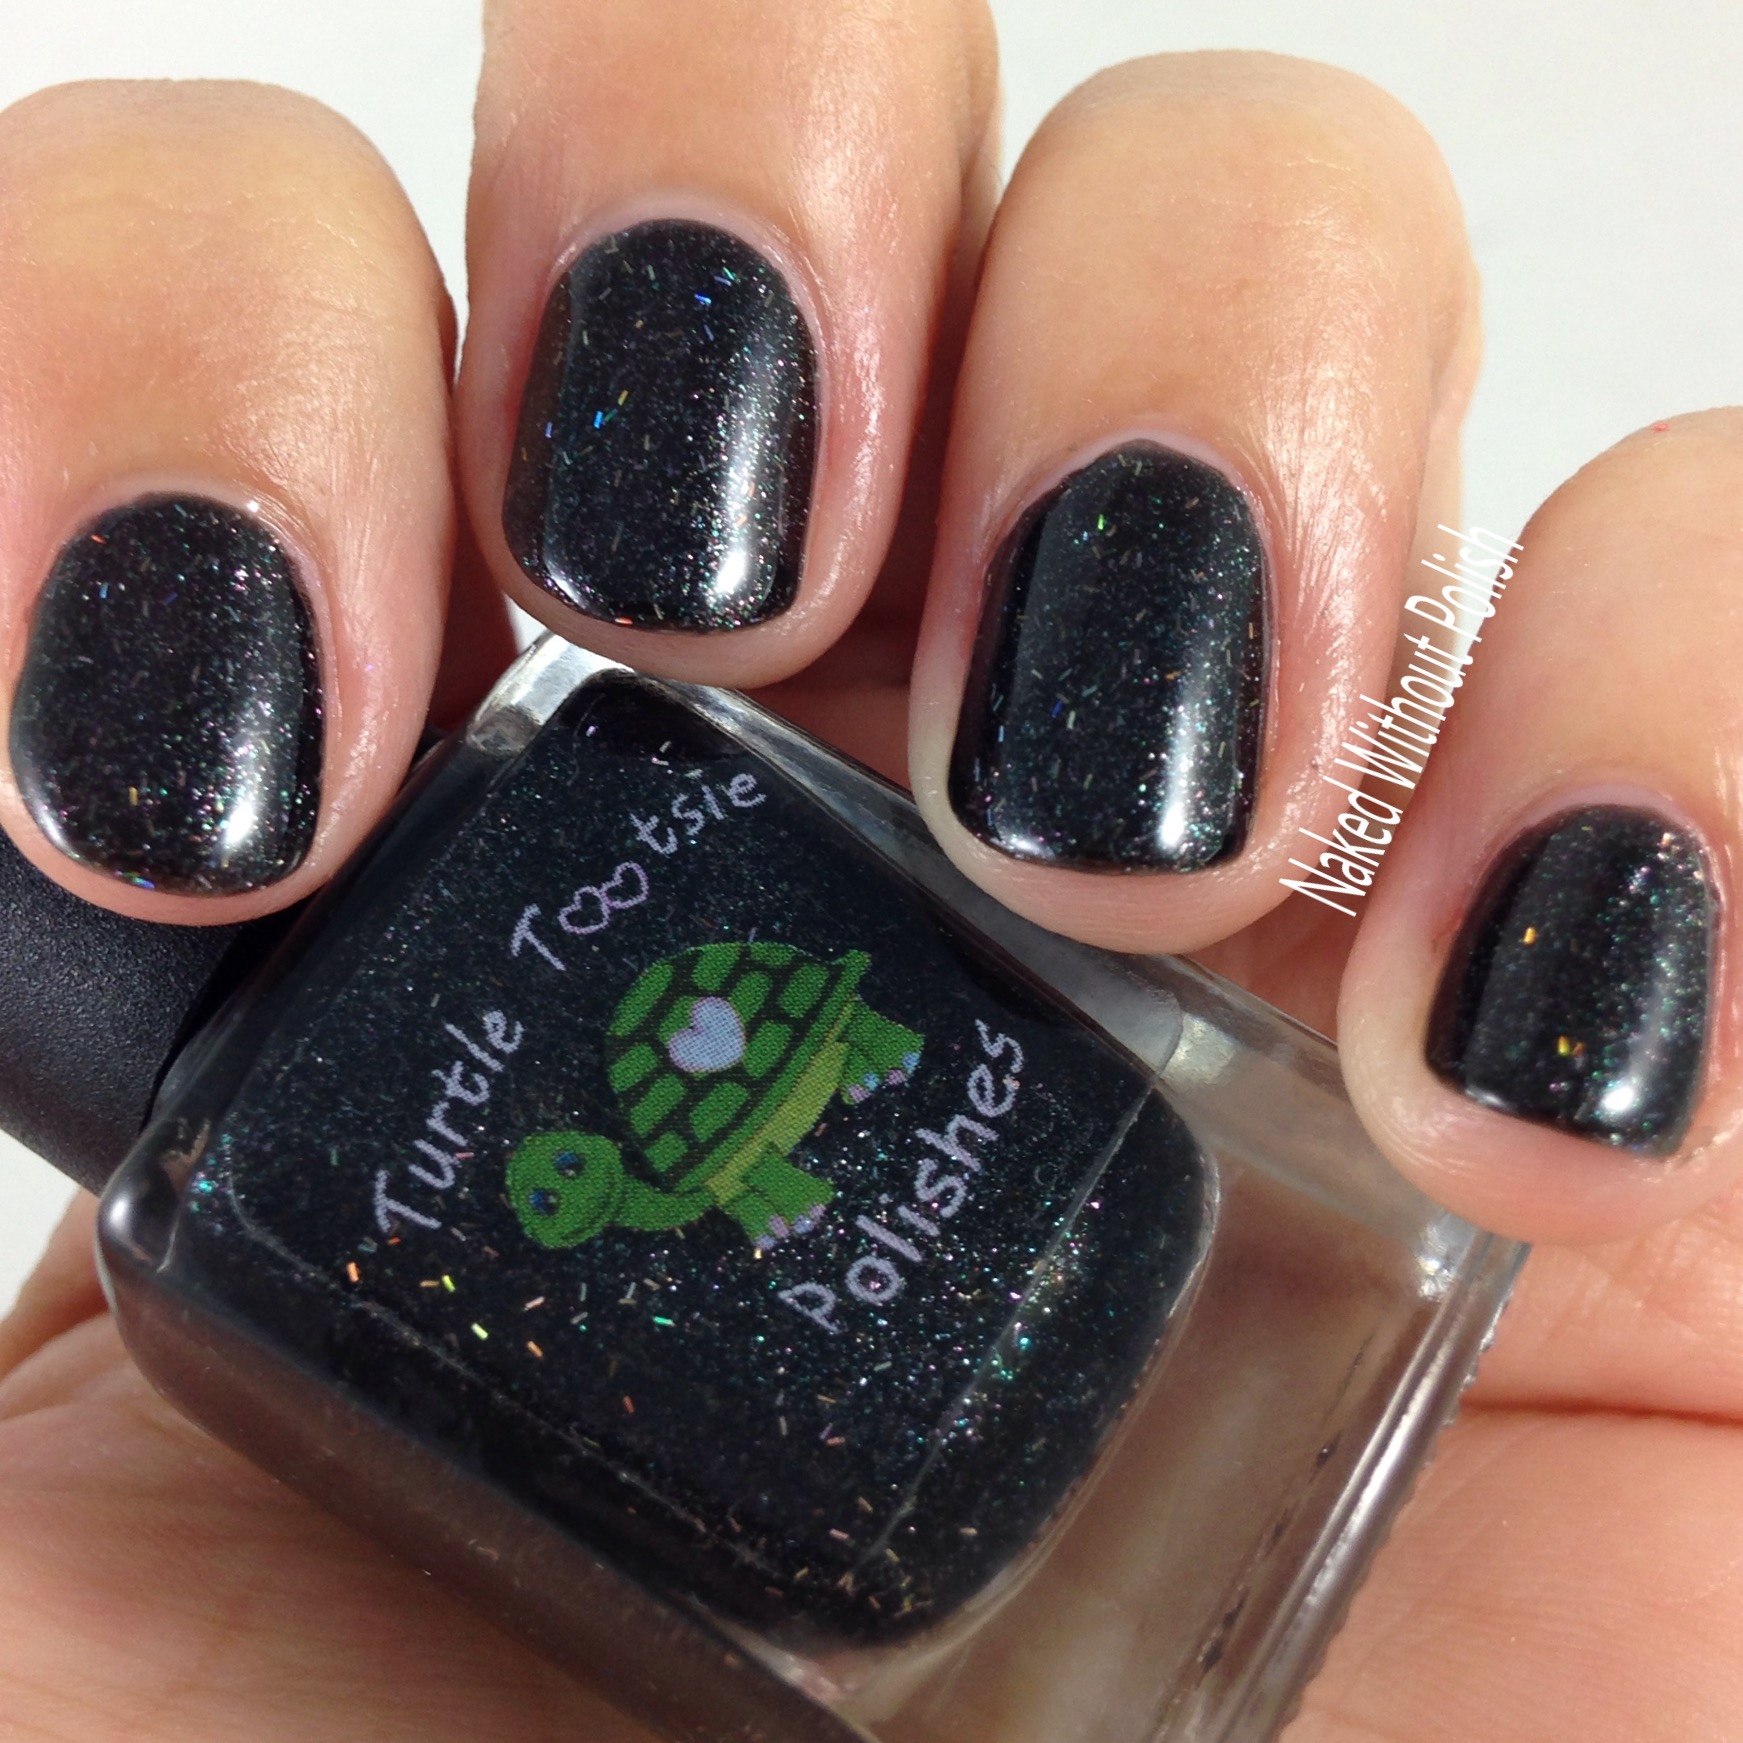 Turtle-Tootsie-Polishes-T-Birds-6